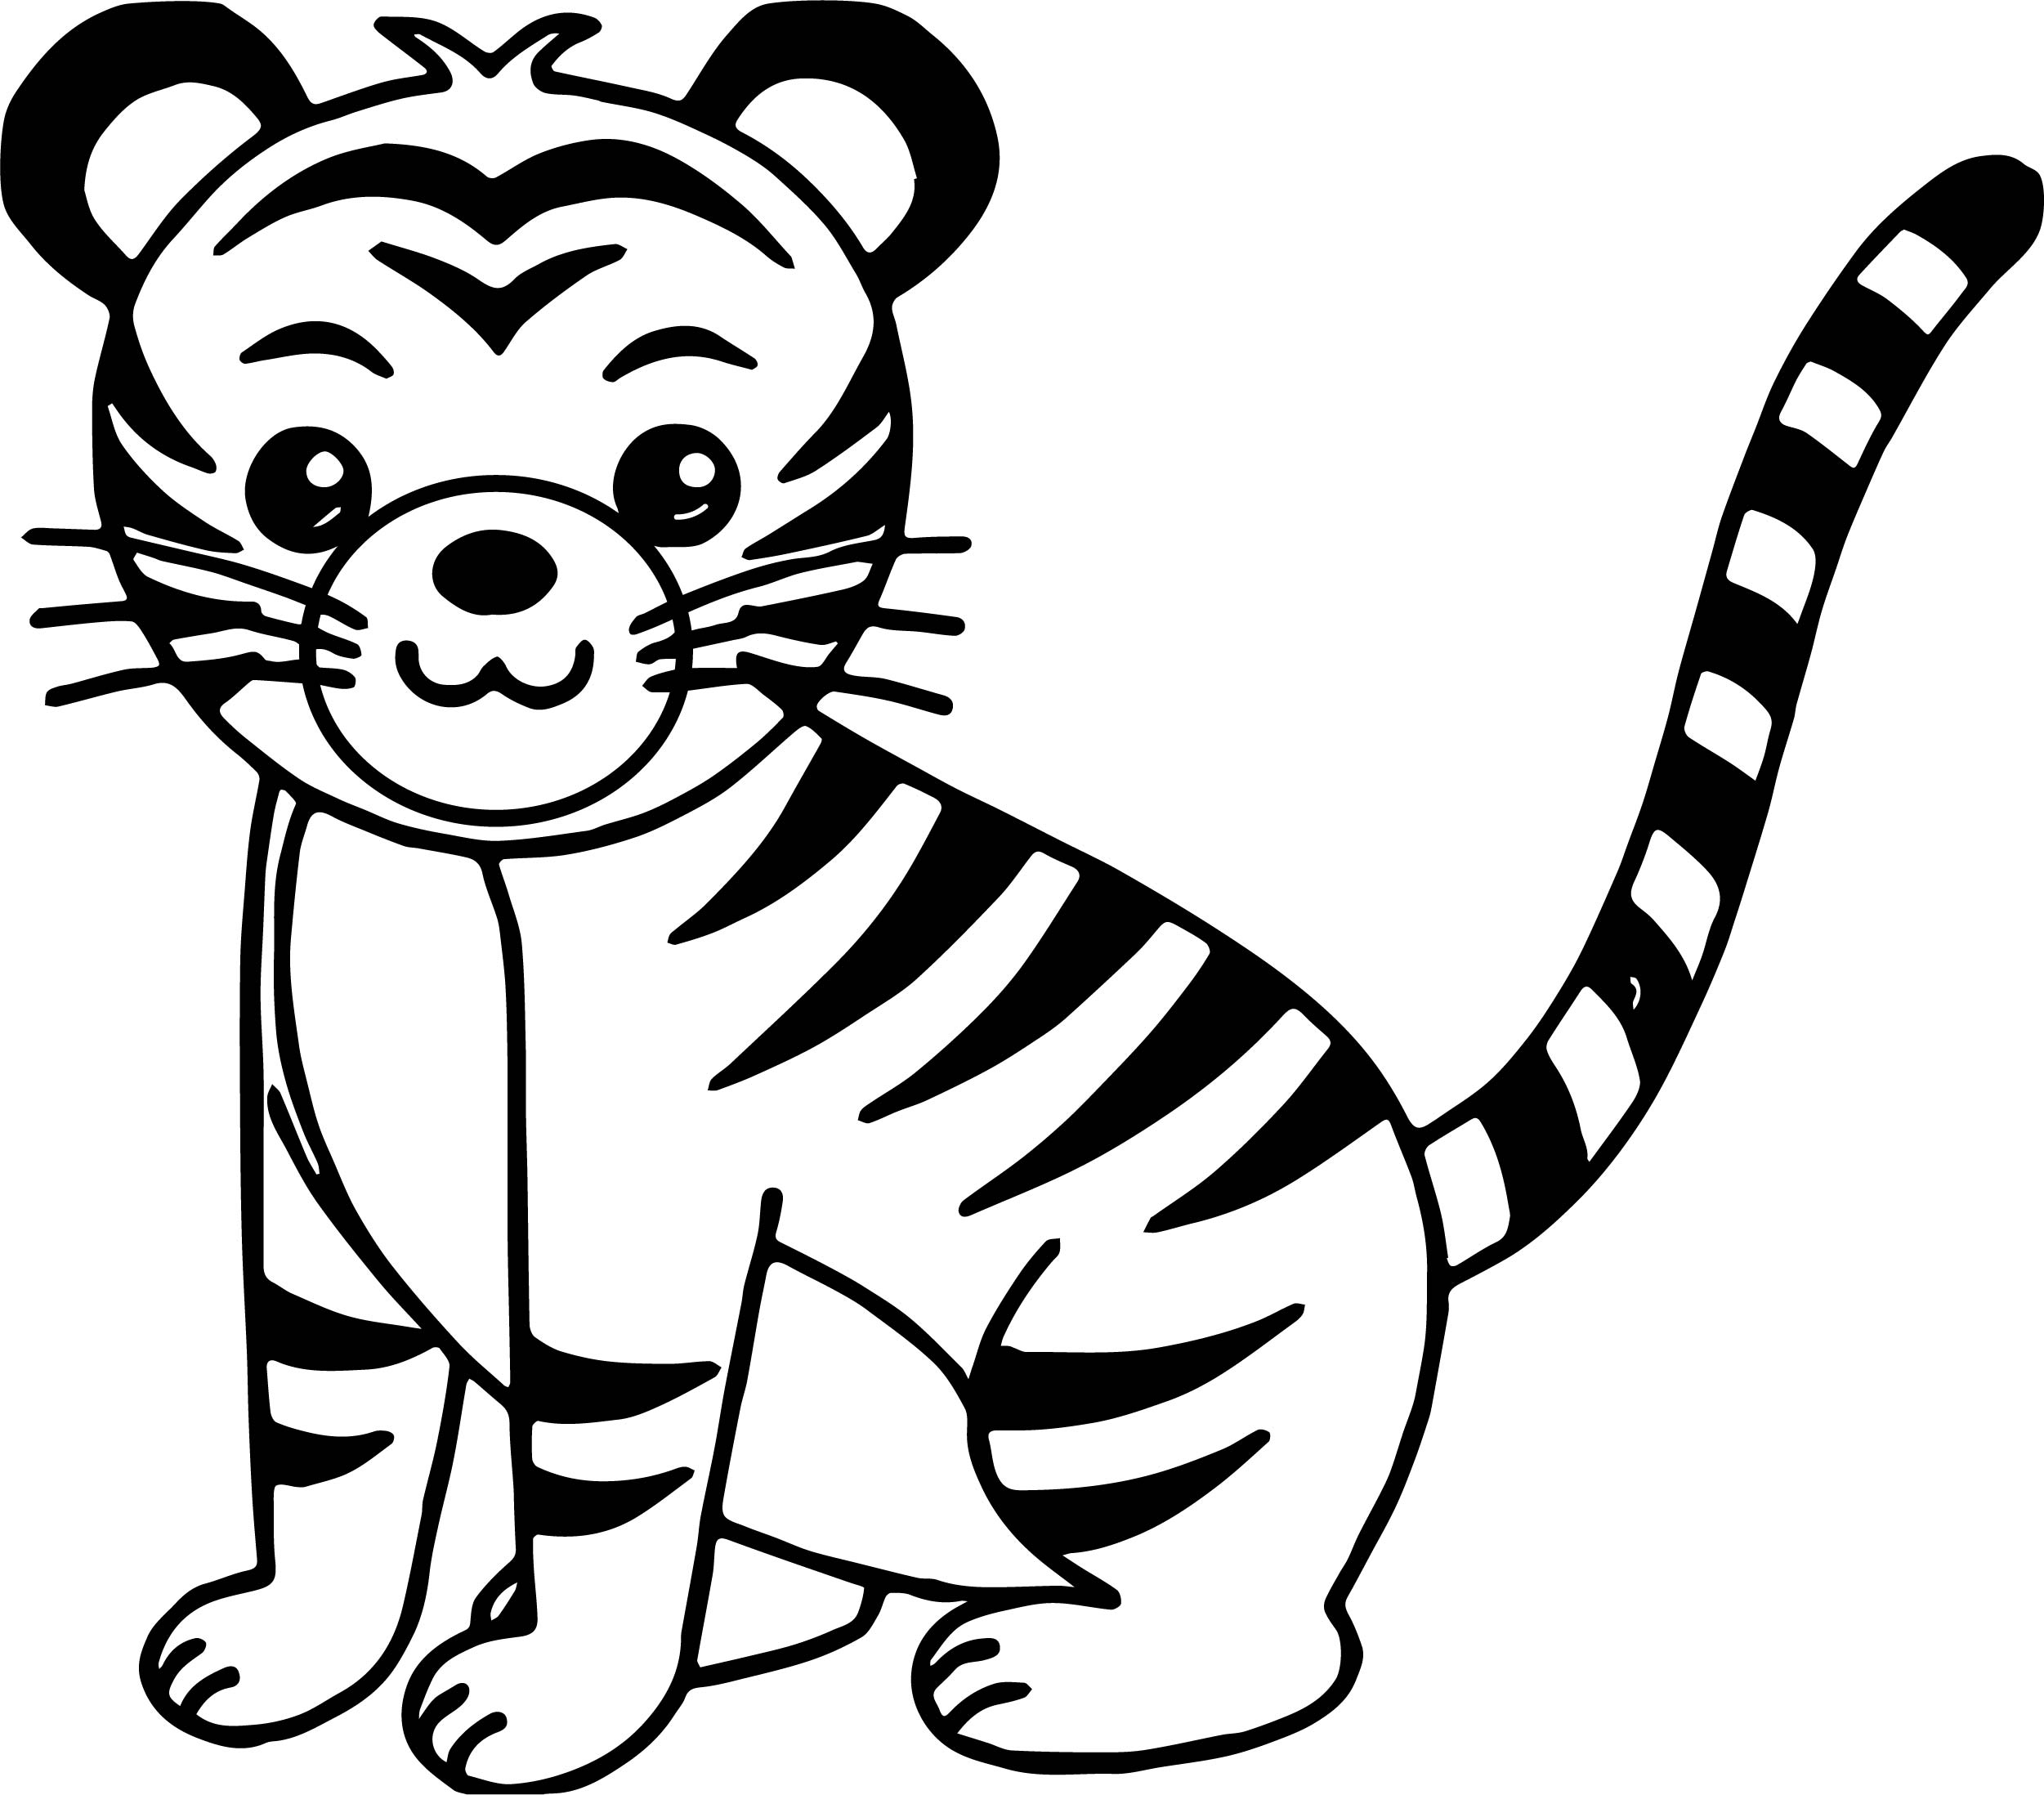 tiger cartoon coloring pages tiger coloring pages free download on clipartmag cartoon tiger pages coloring